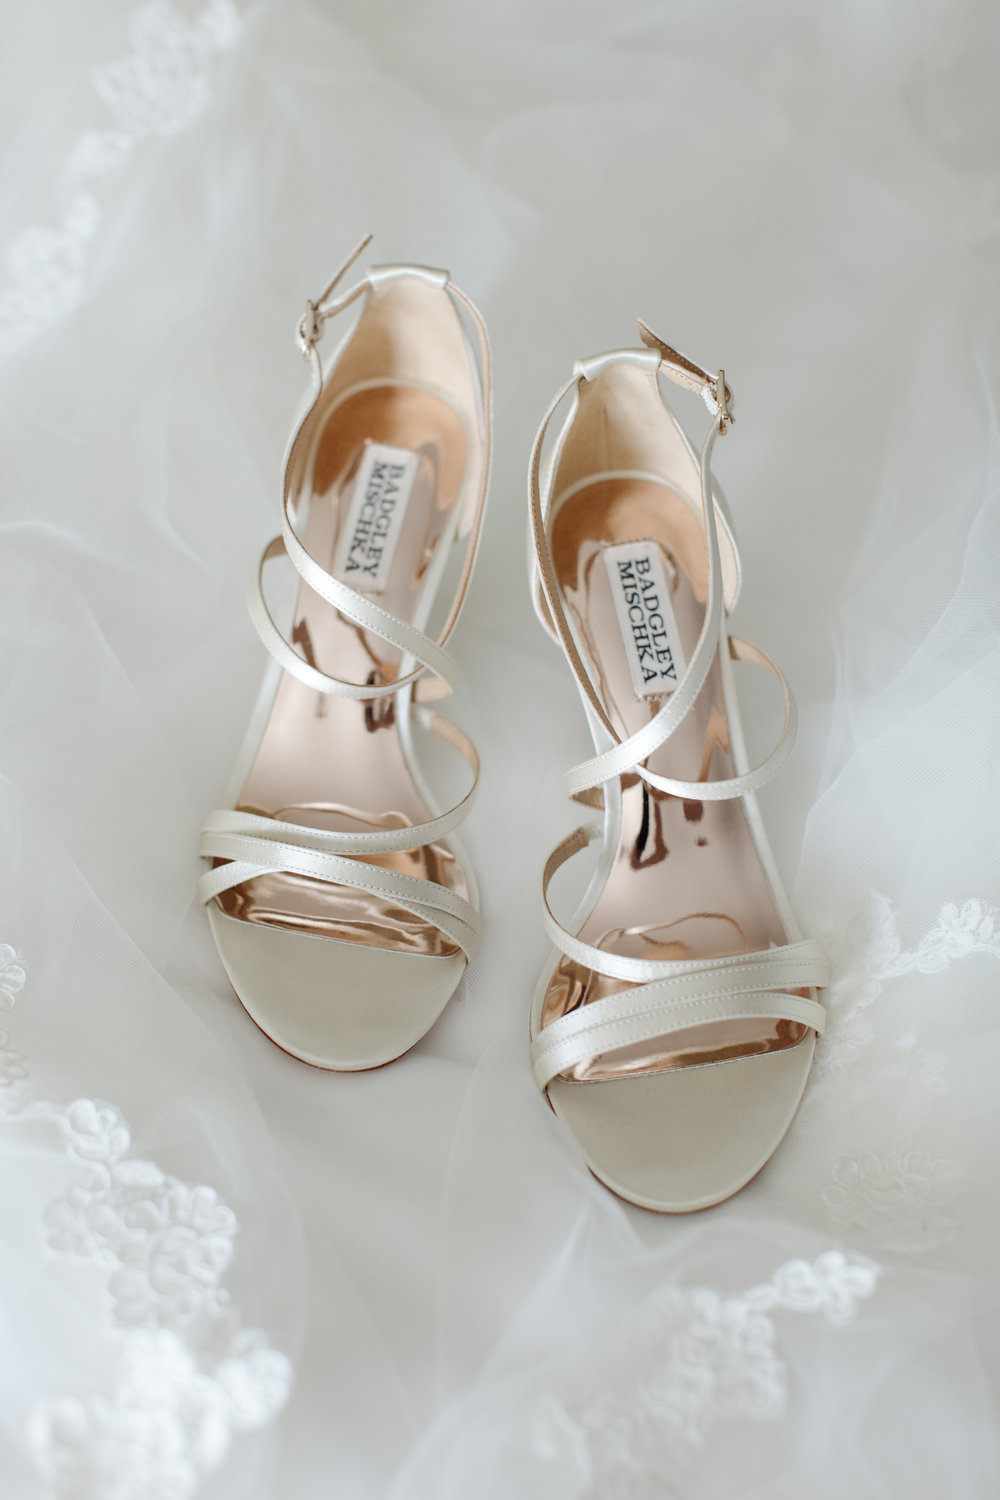 Shoe Details - Dallas, Tx - Fall Wedding - Julian Leaver Events